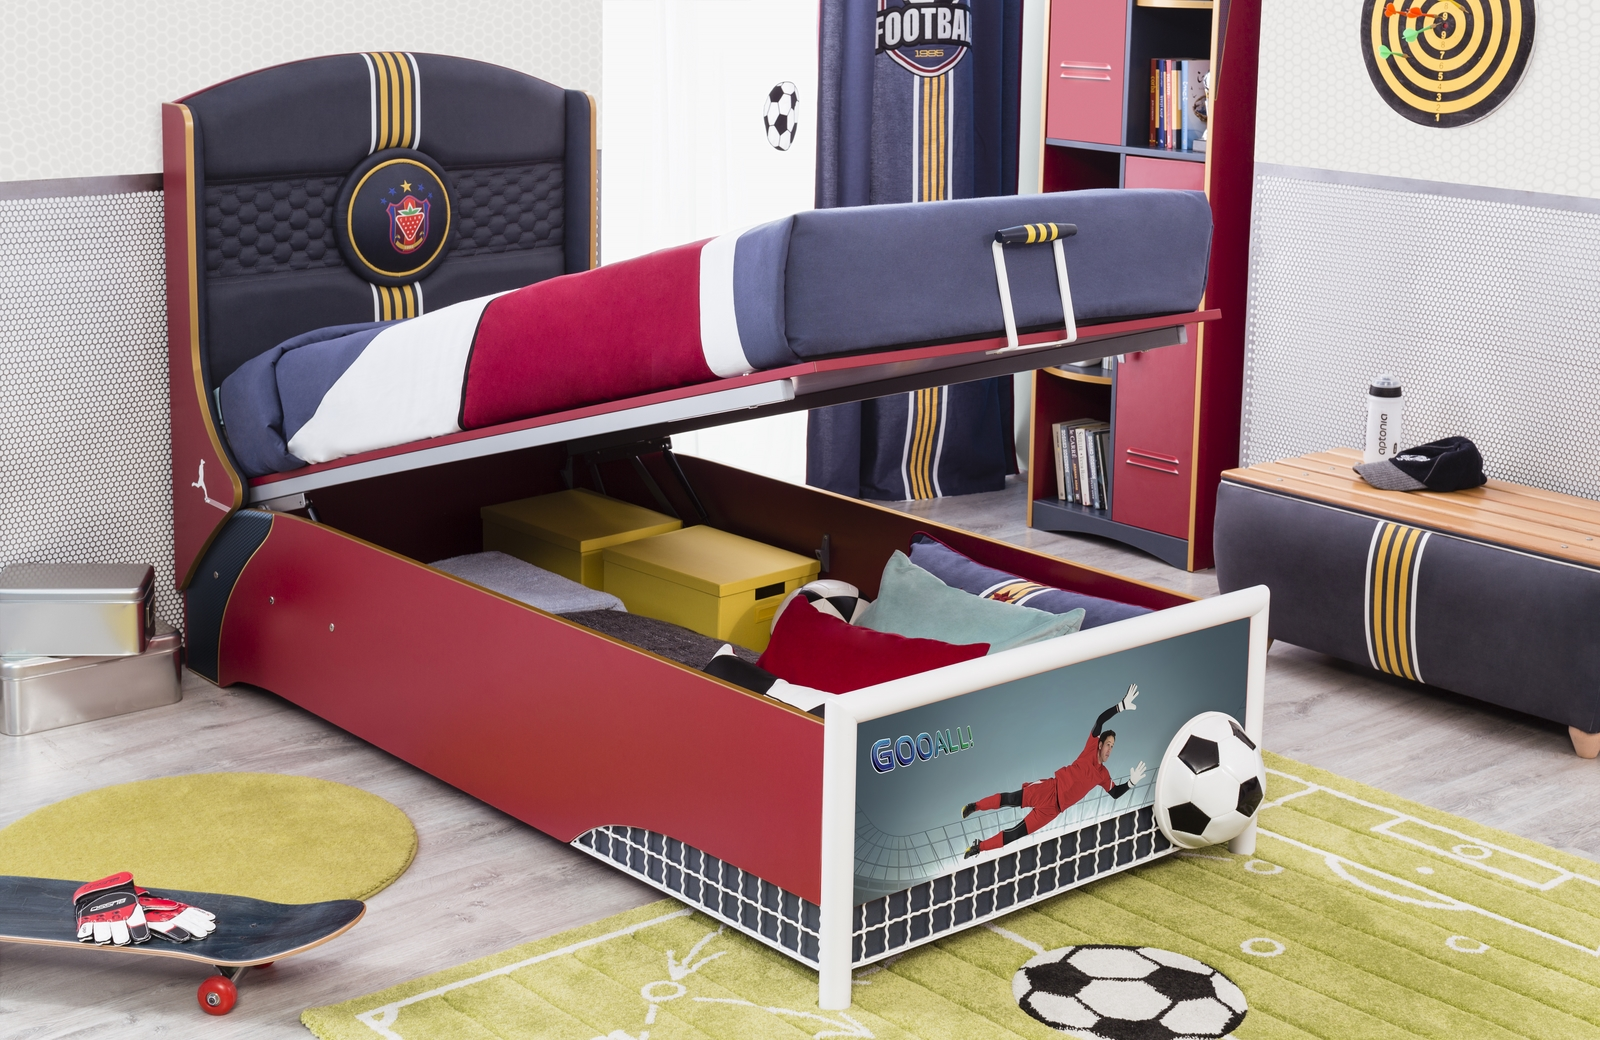 Champion_boxspring_opberg_bed_jongens_bed_kinderbed_1